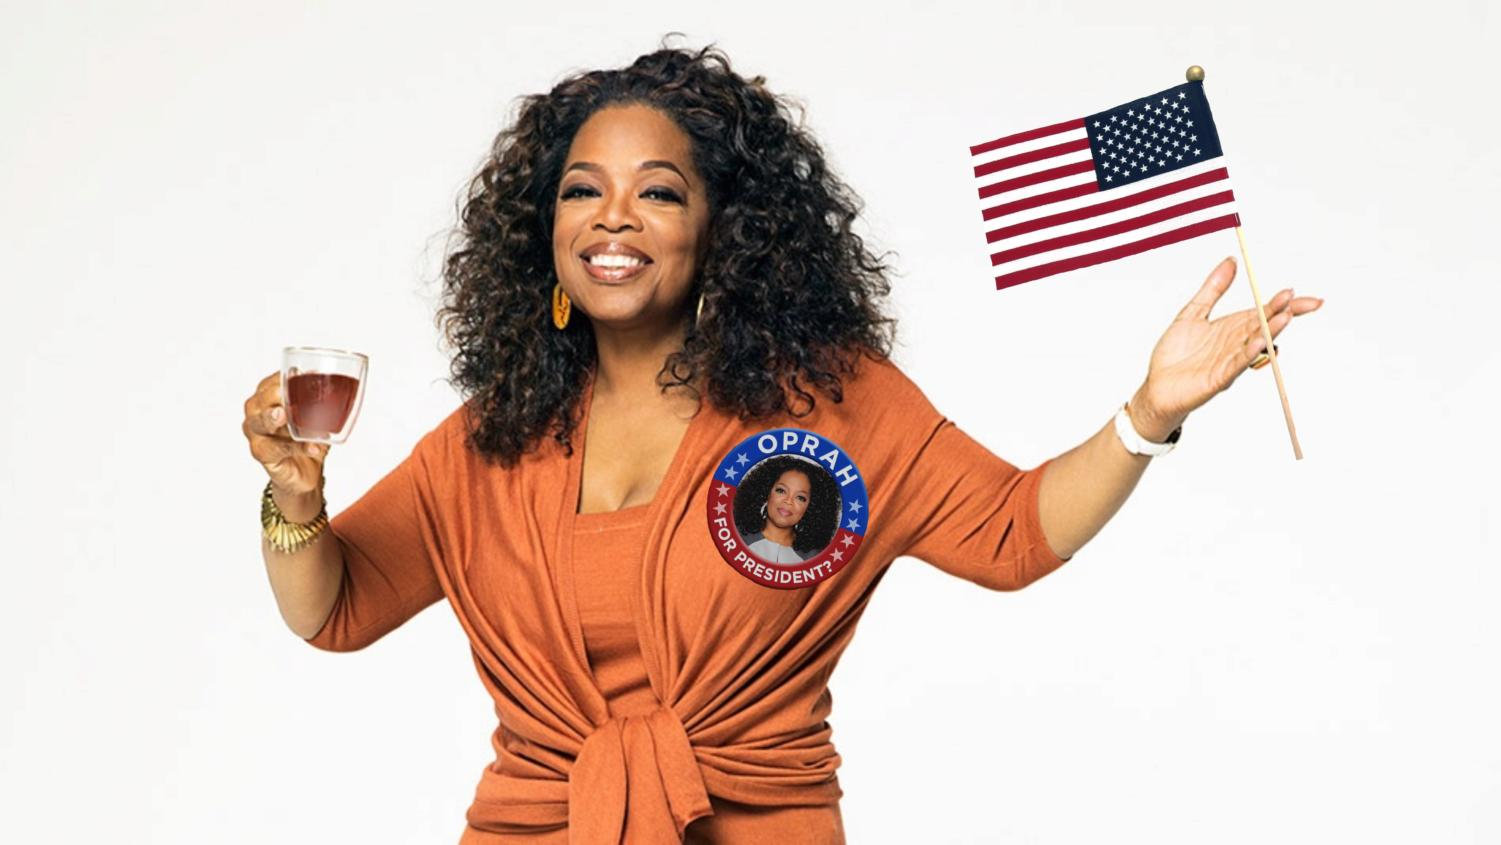 Can we expect this in coming years? Oprah, has considered entering the 2020 presidential race. (Photo by Mary Silzer)